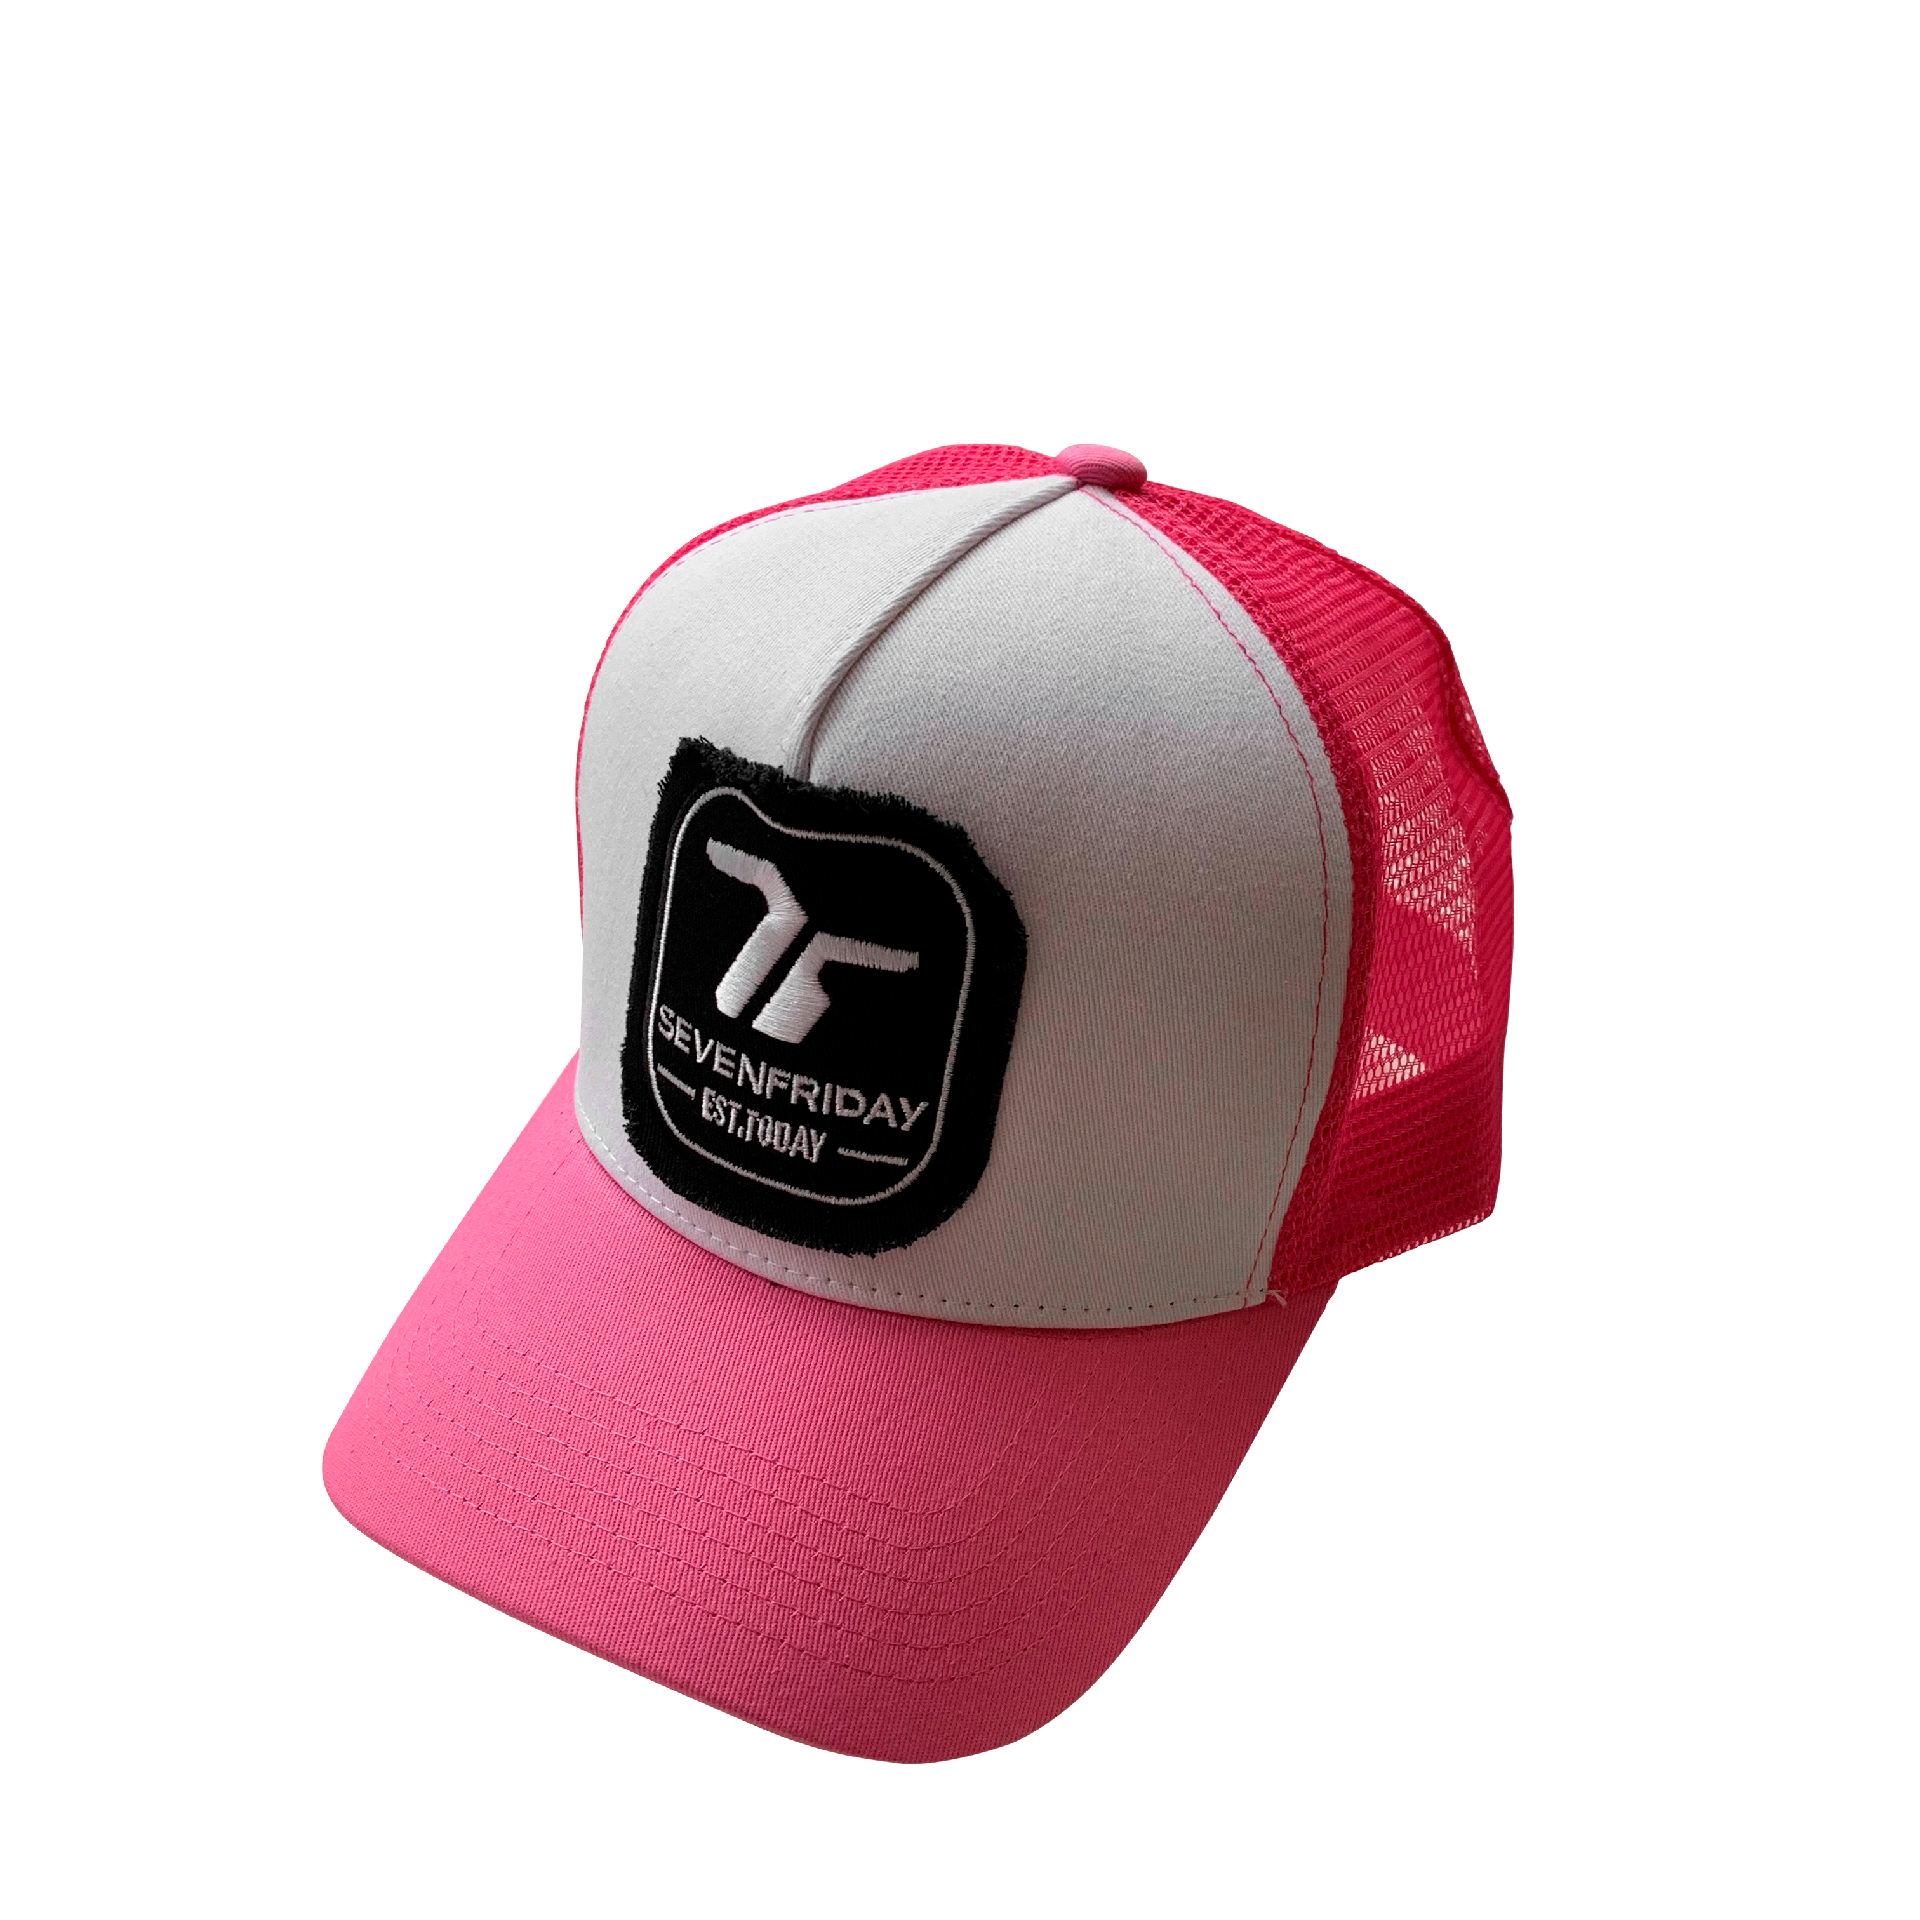 SEVENFRIDAY Cap, Pink